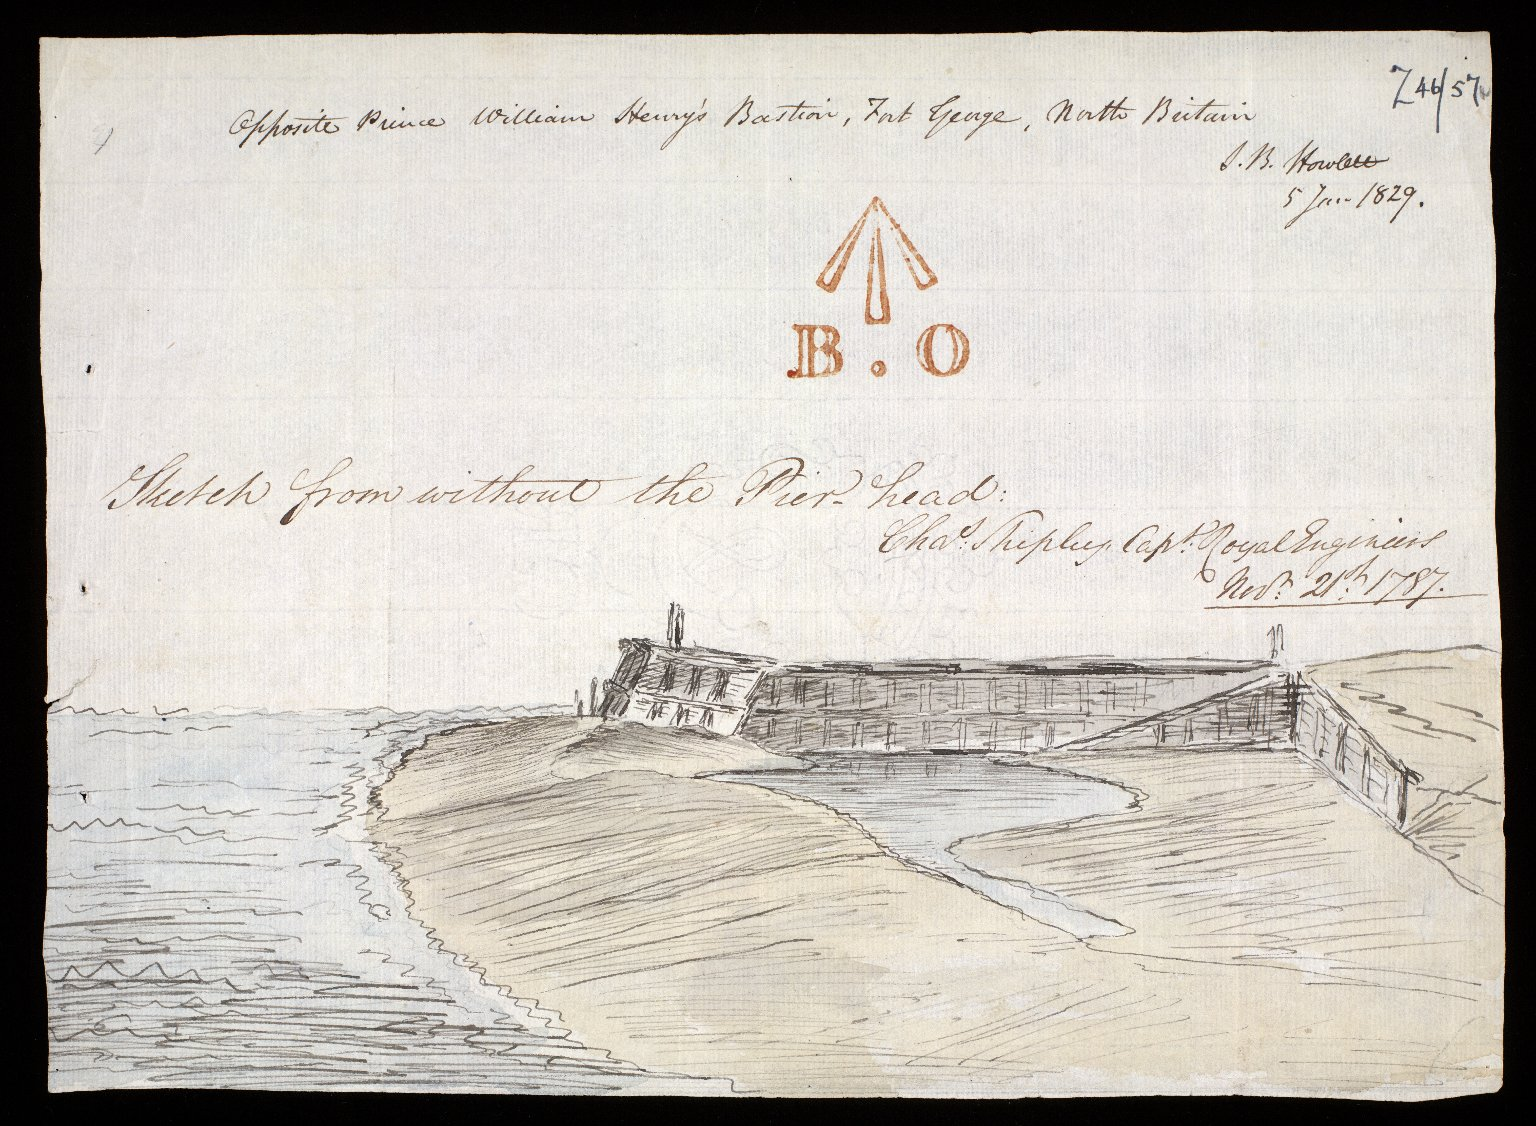 Sketch from without the Pier head; Opposite Prince William Henry's Bastion, Fort George, North Britain [1 of 1]